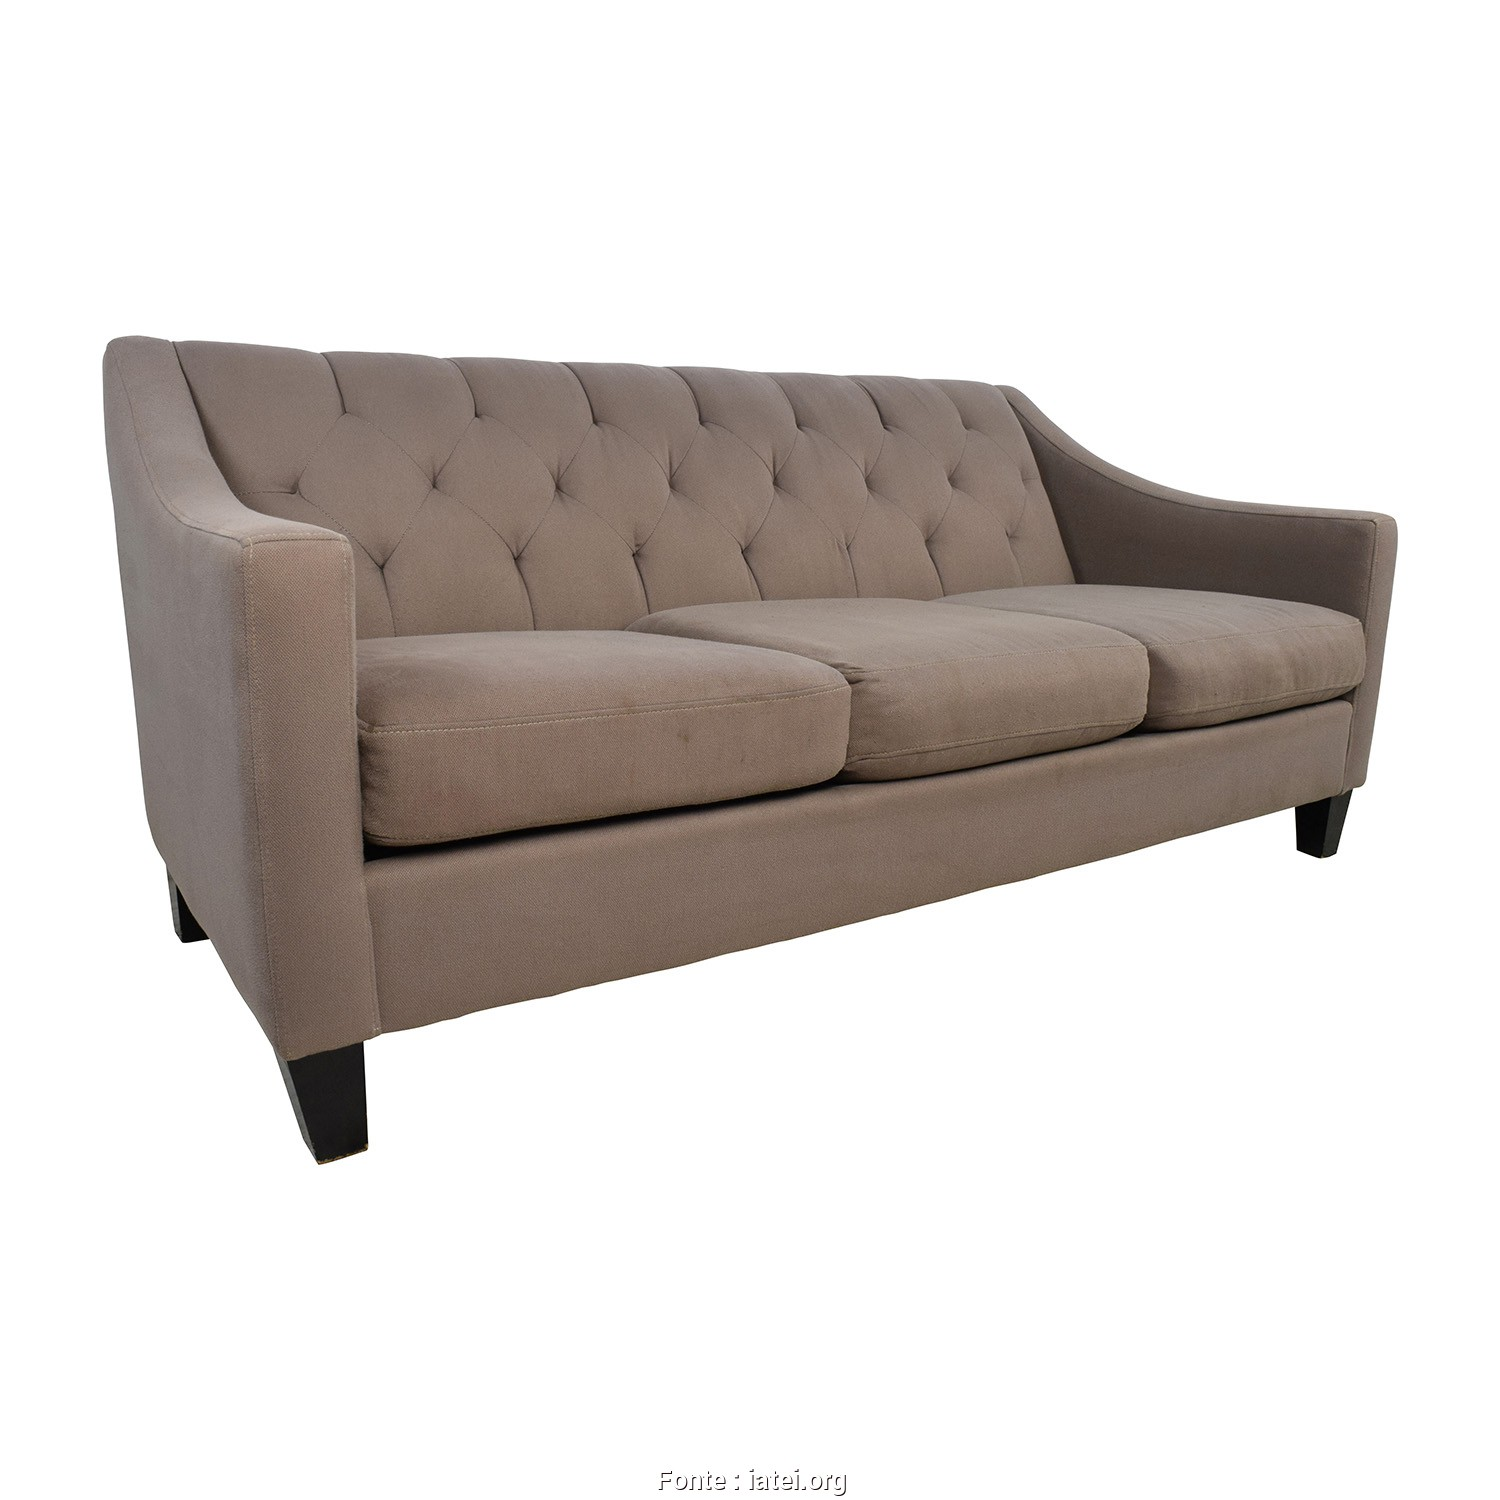 Divano Rattan Ikea, Costoso Divani Rattan Ikea Sbalorditivo Macys Arielle Sofa Beautiful Macys Tufted Sofa Nari 83 Tufted Back Of